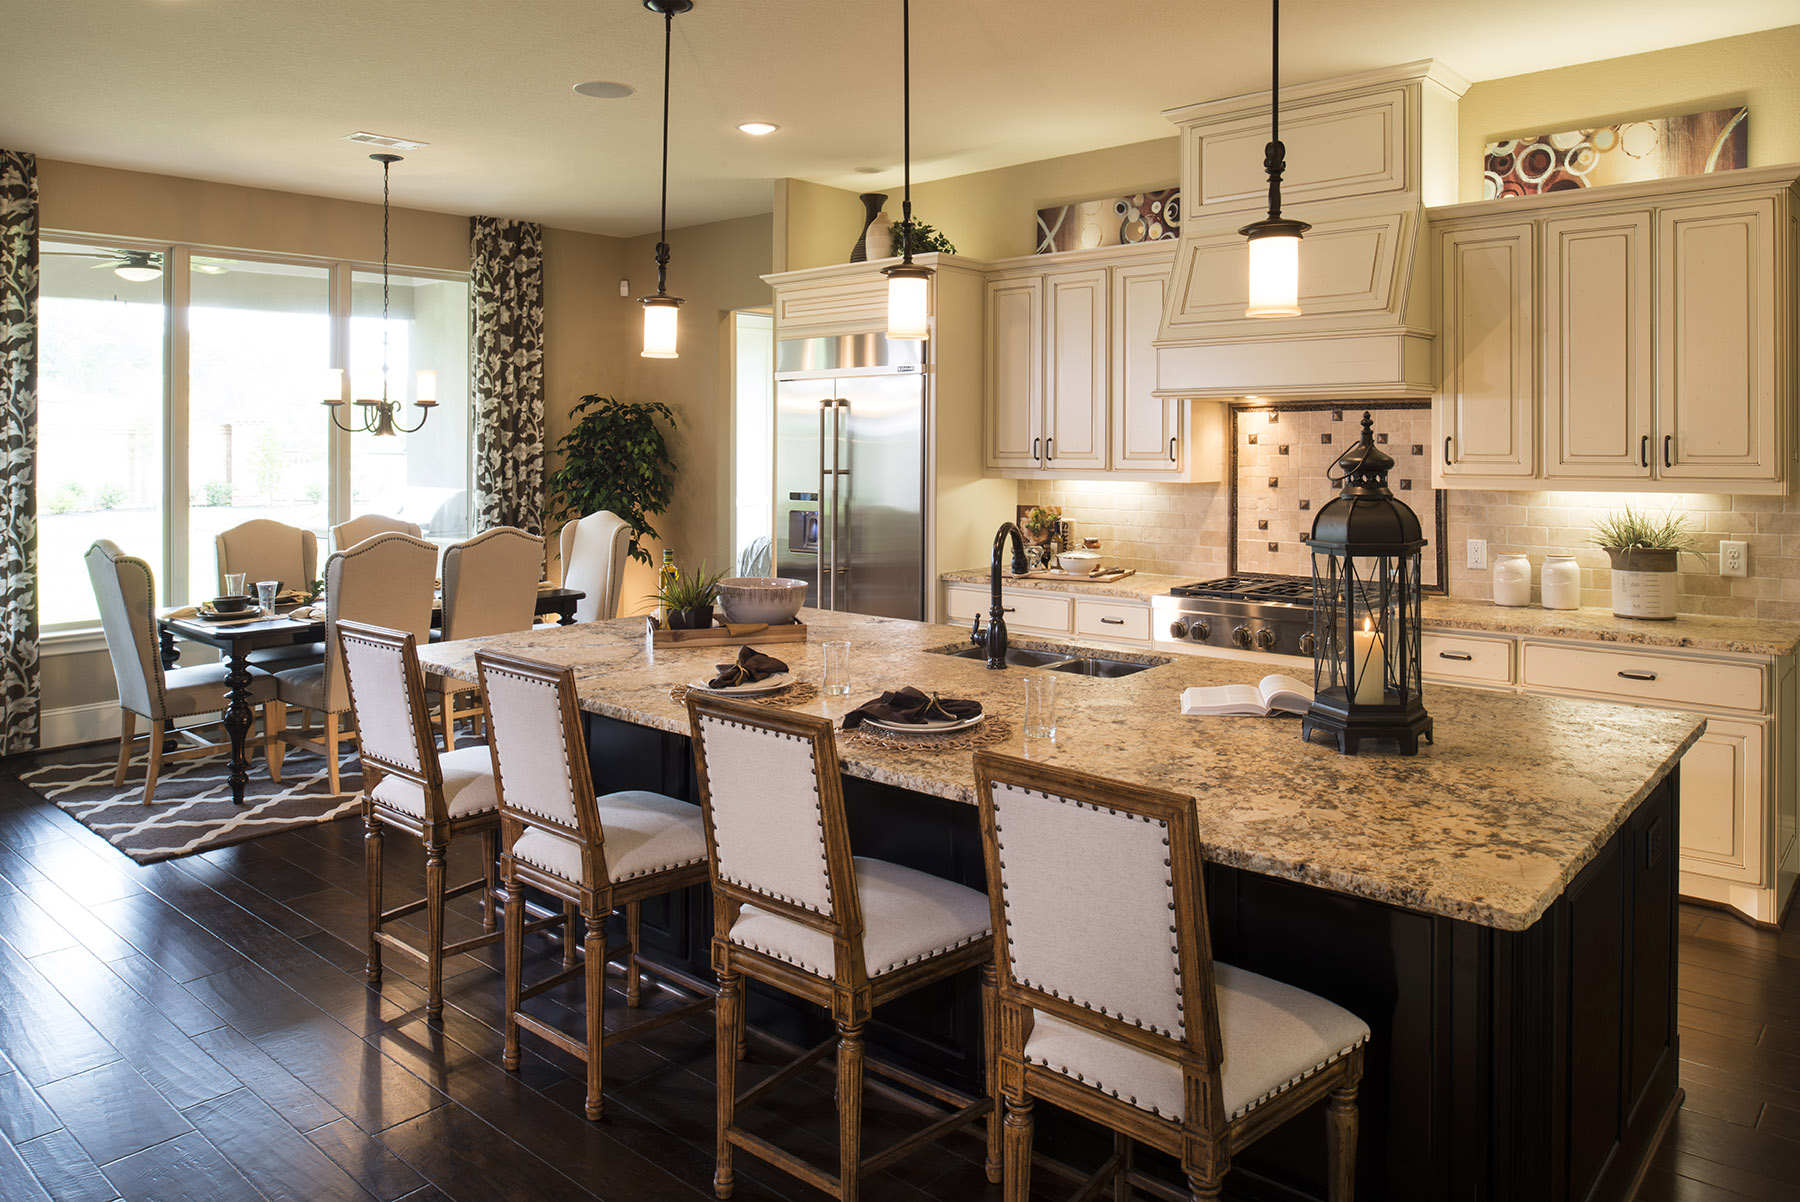 Home Design: Toll Brothers Announces Two Luxury Quick Delivery Homes